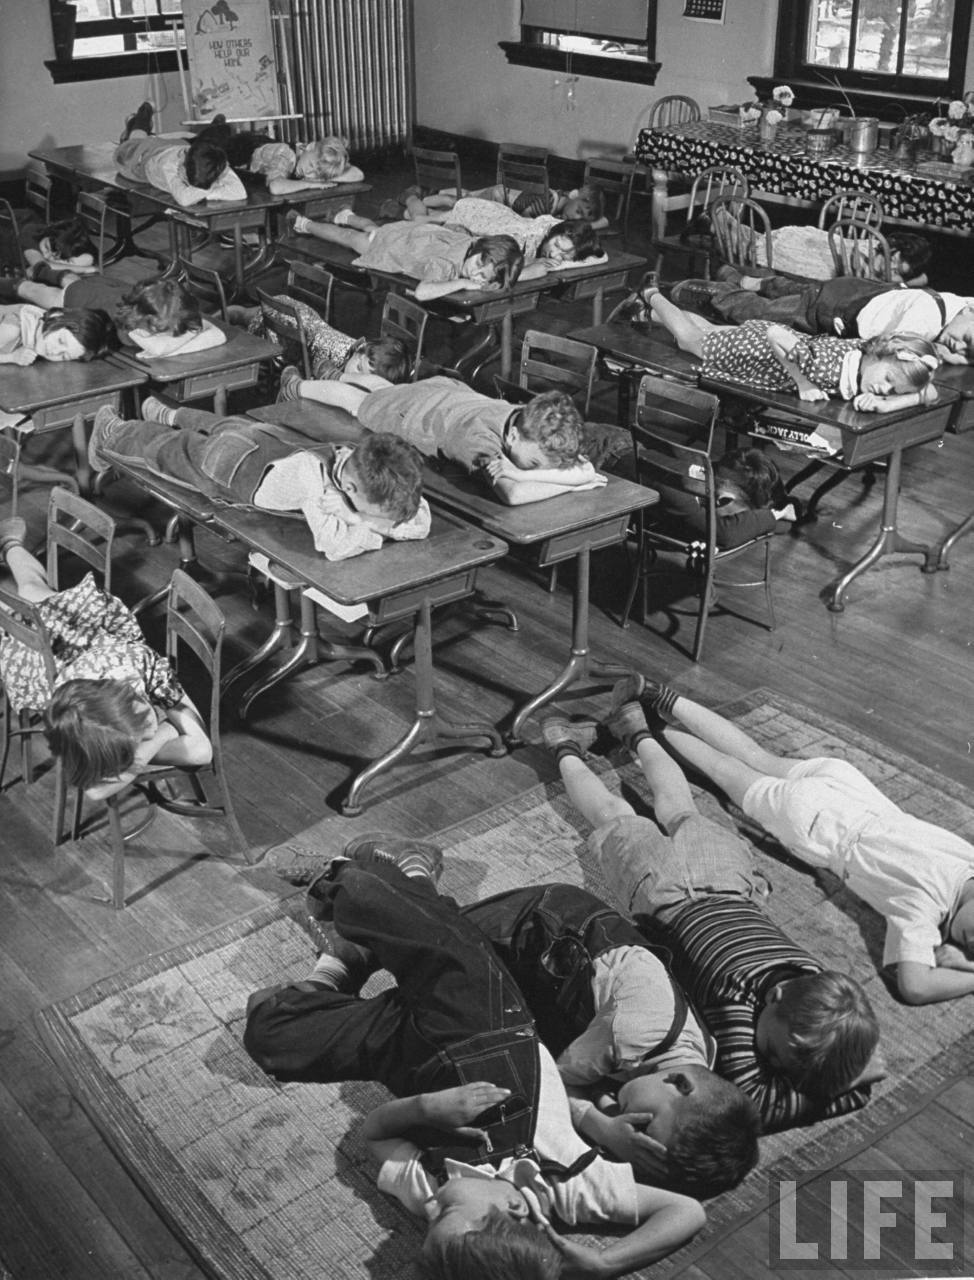 A view of children in school taking a nap in the middle of the day.